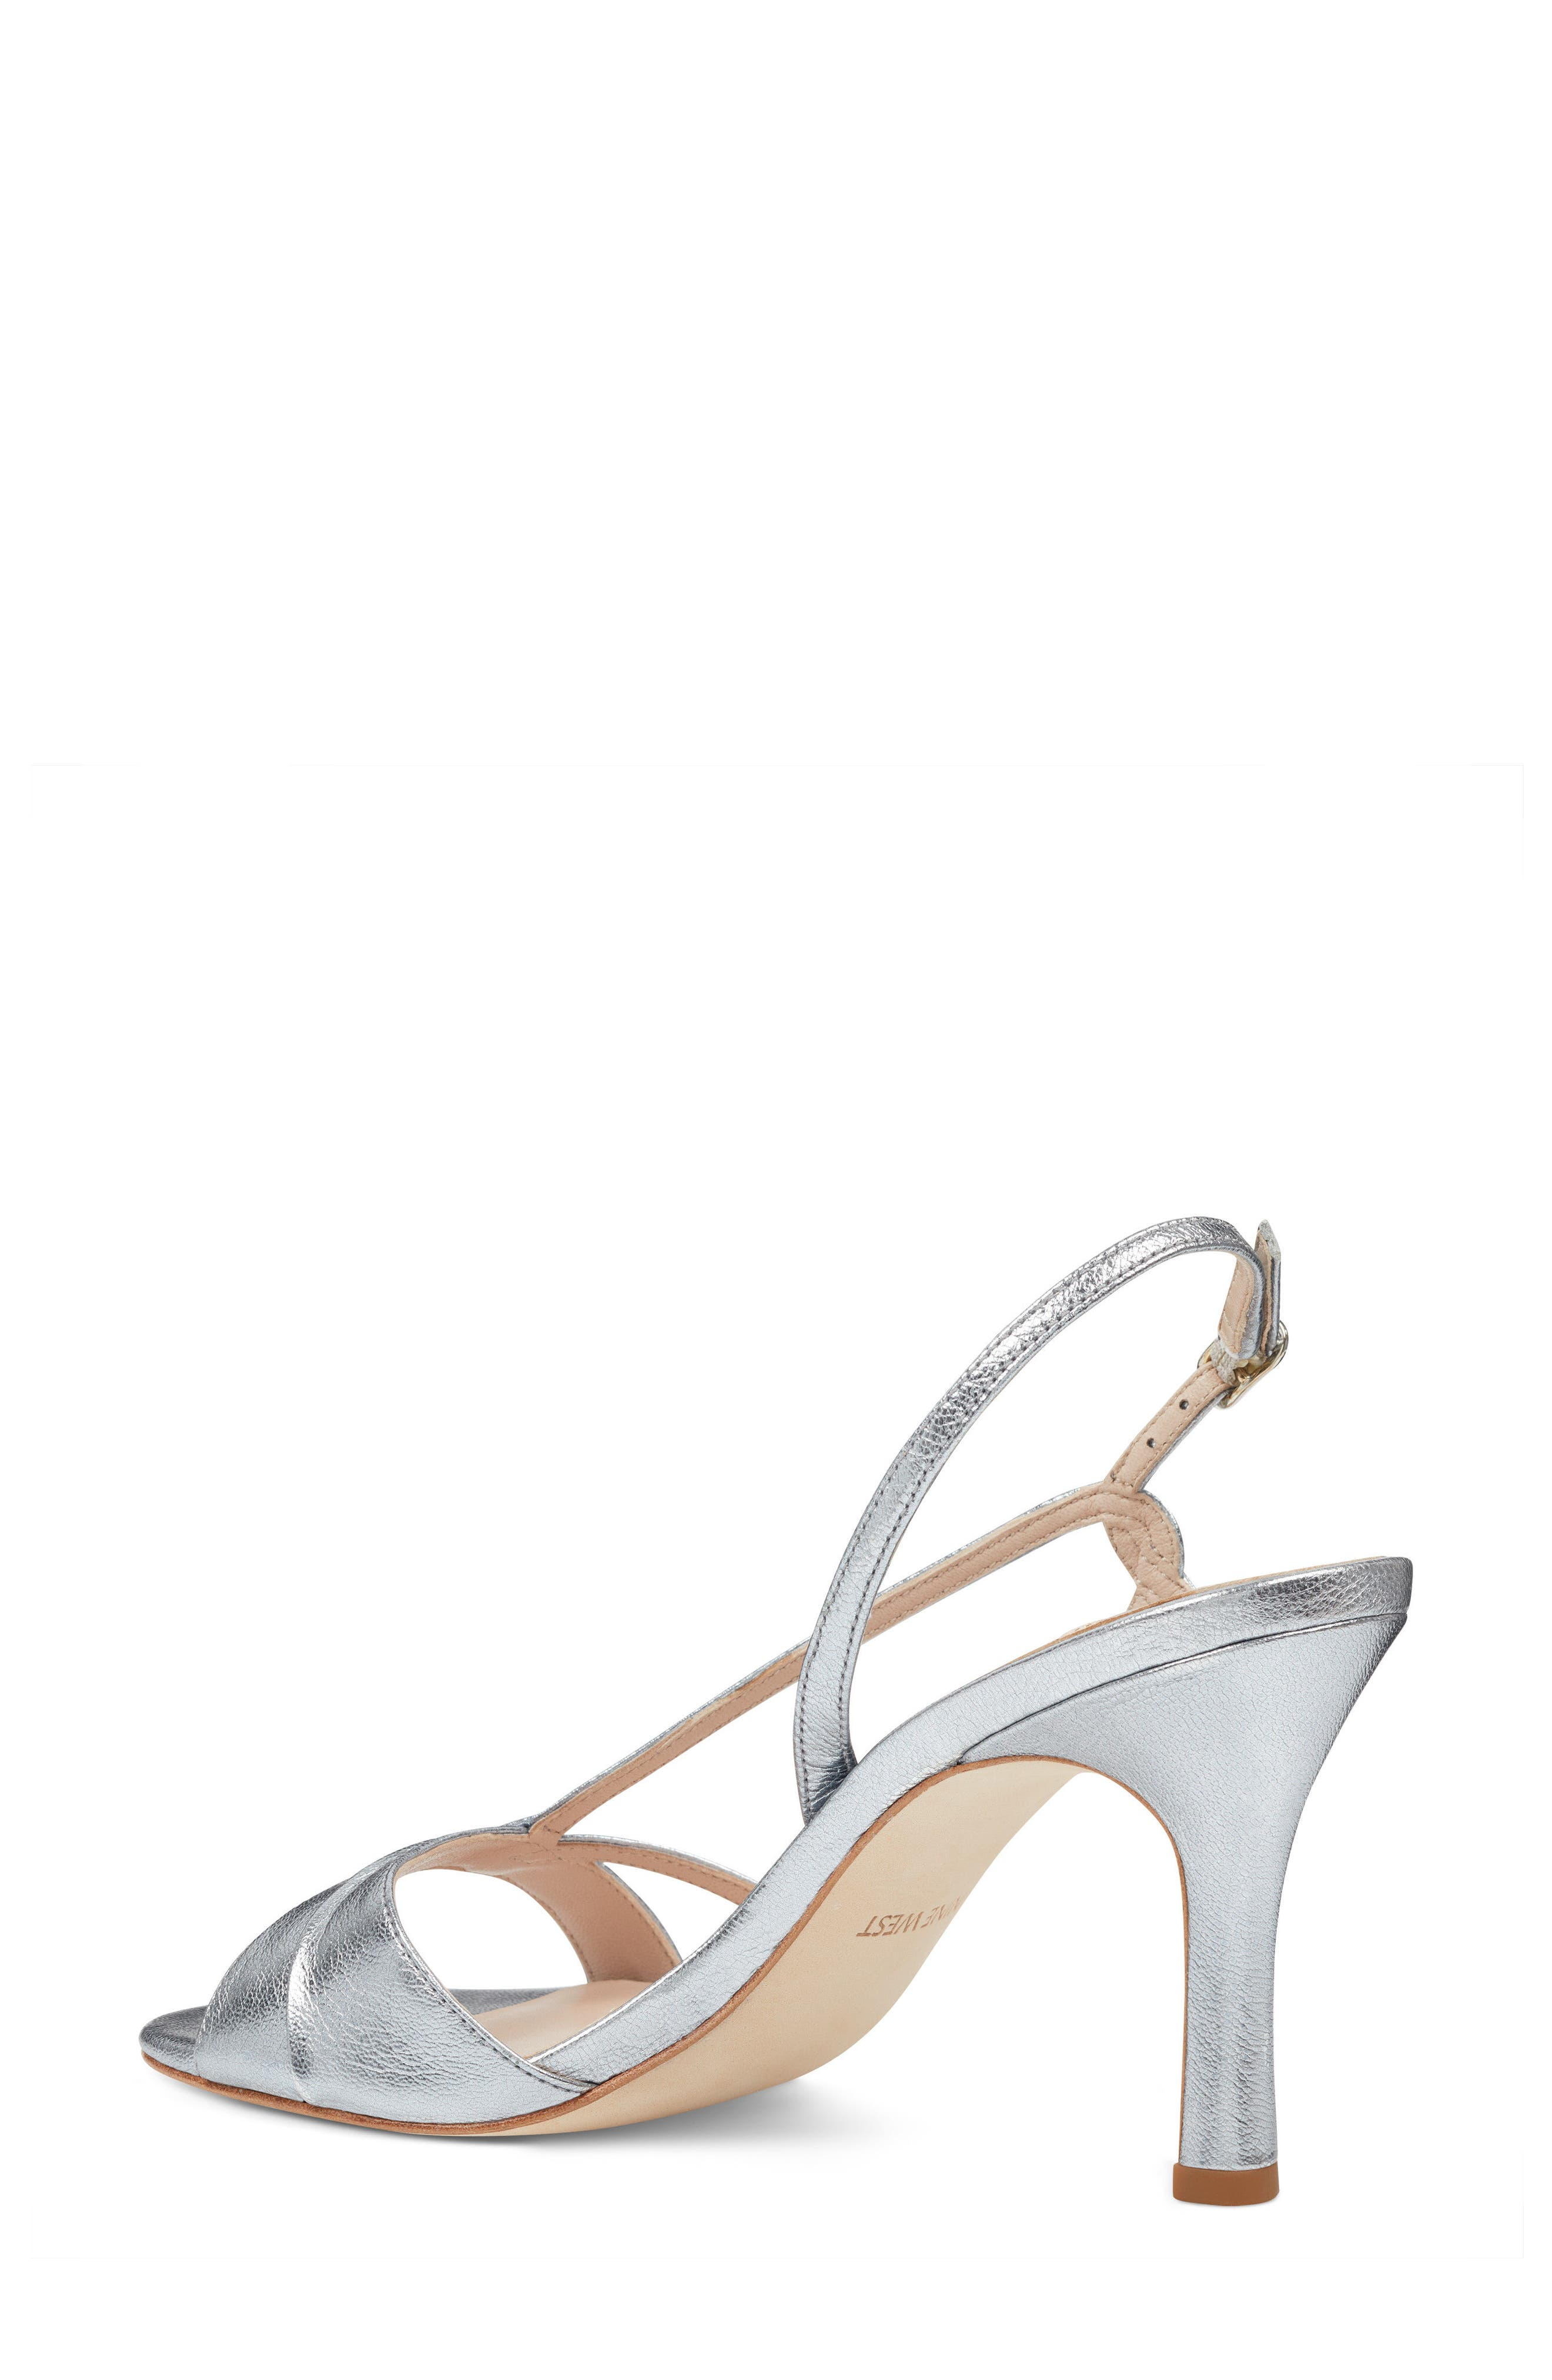 Accolia - 40th Anniversary Capsule Collection Sandal,                             Alternate thumbnail 2, color,                             SILVER LEATHER